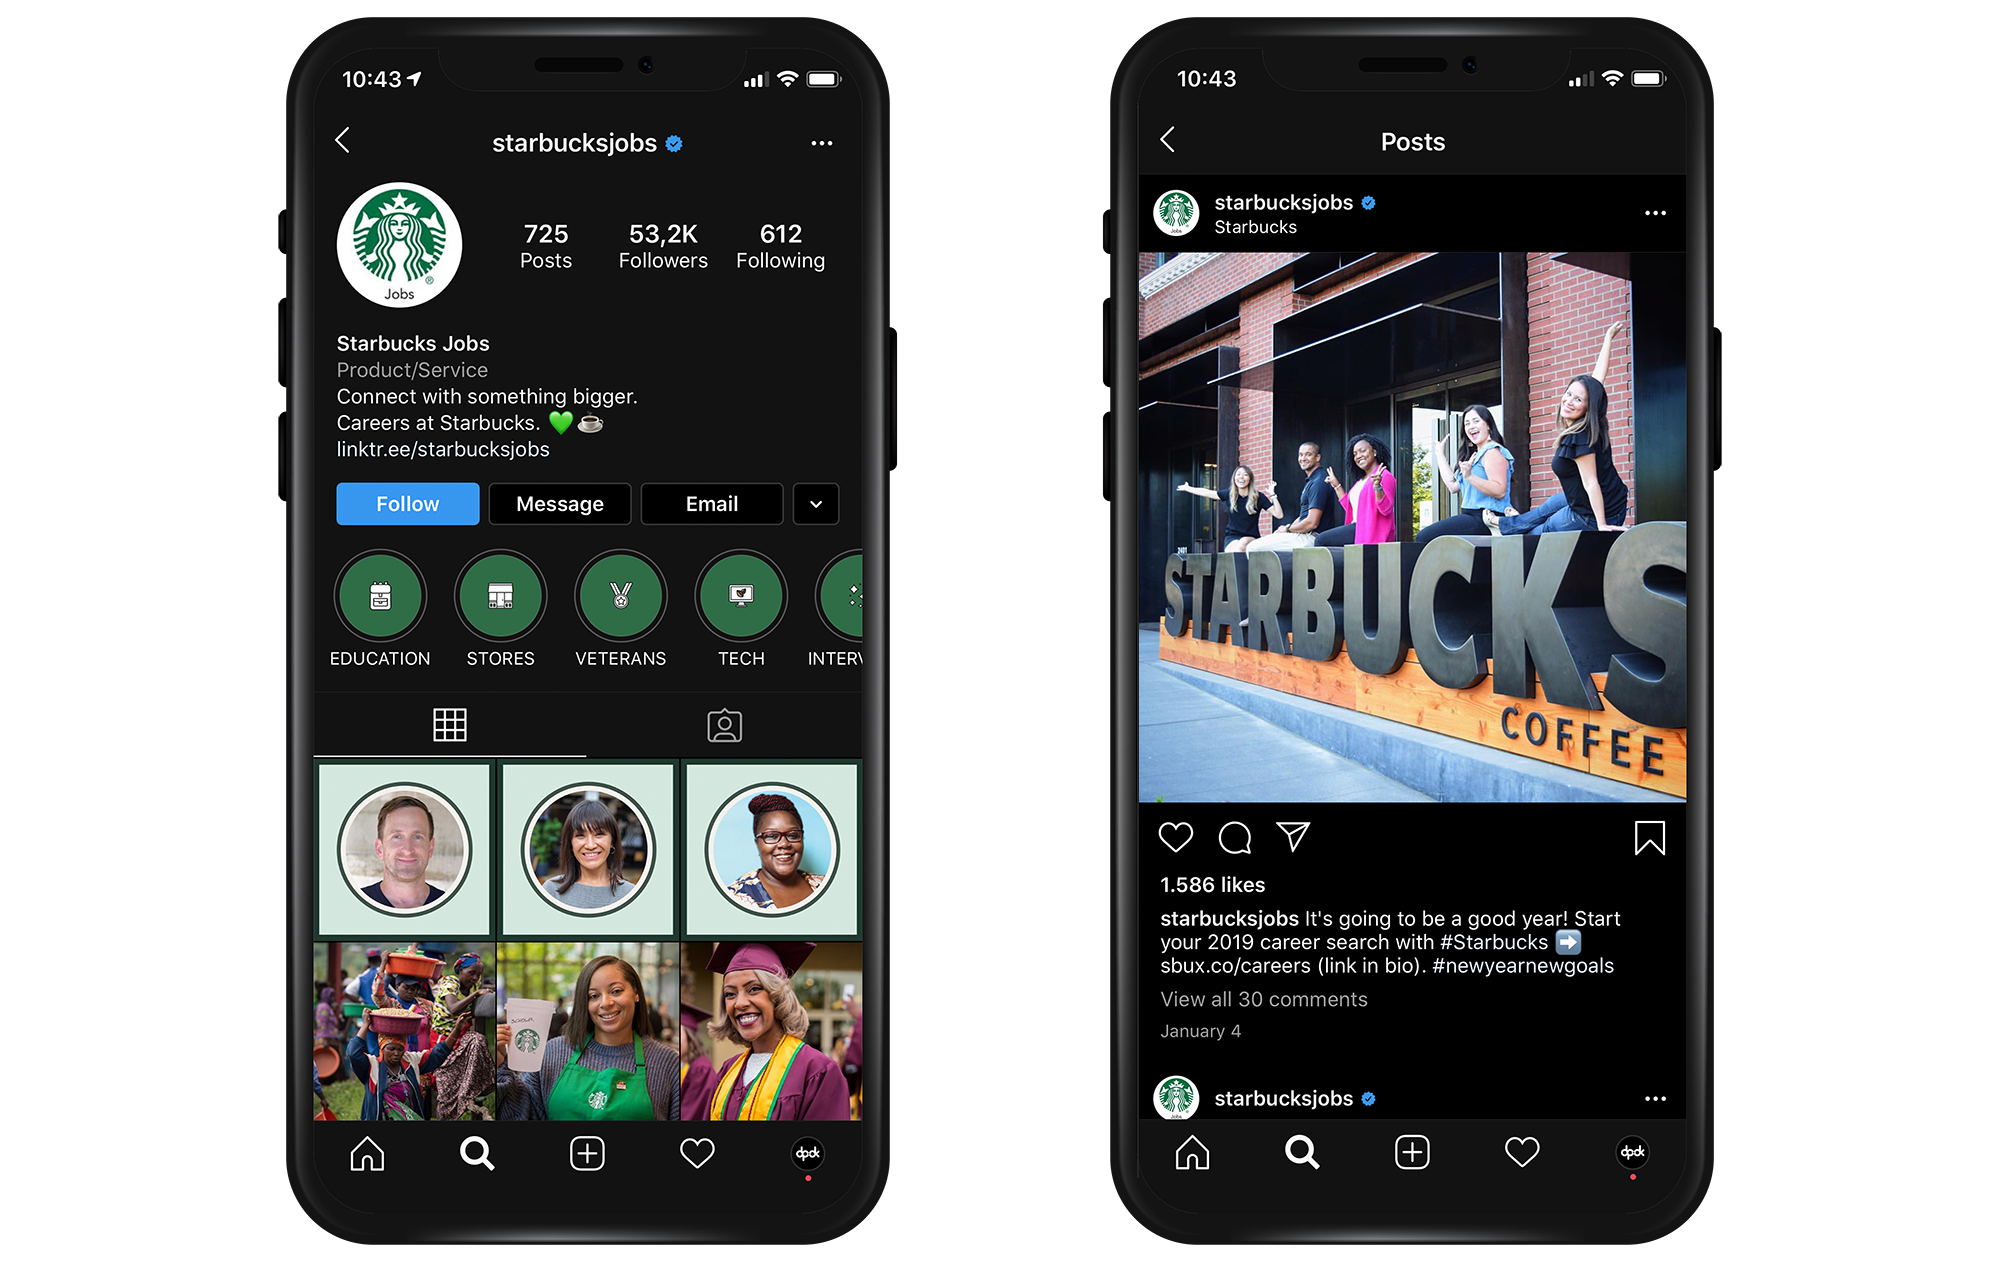 Starbuck jobs Instagram